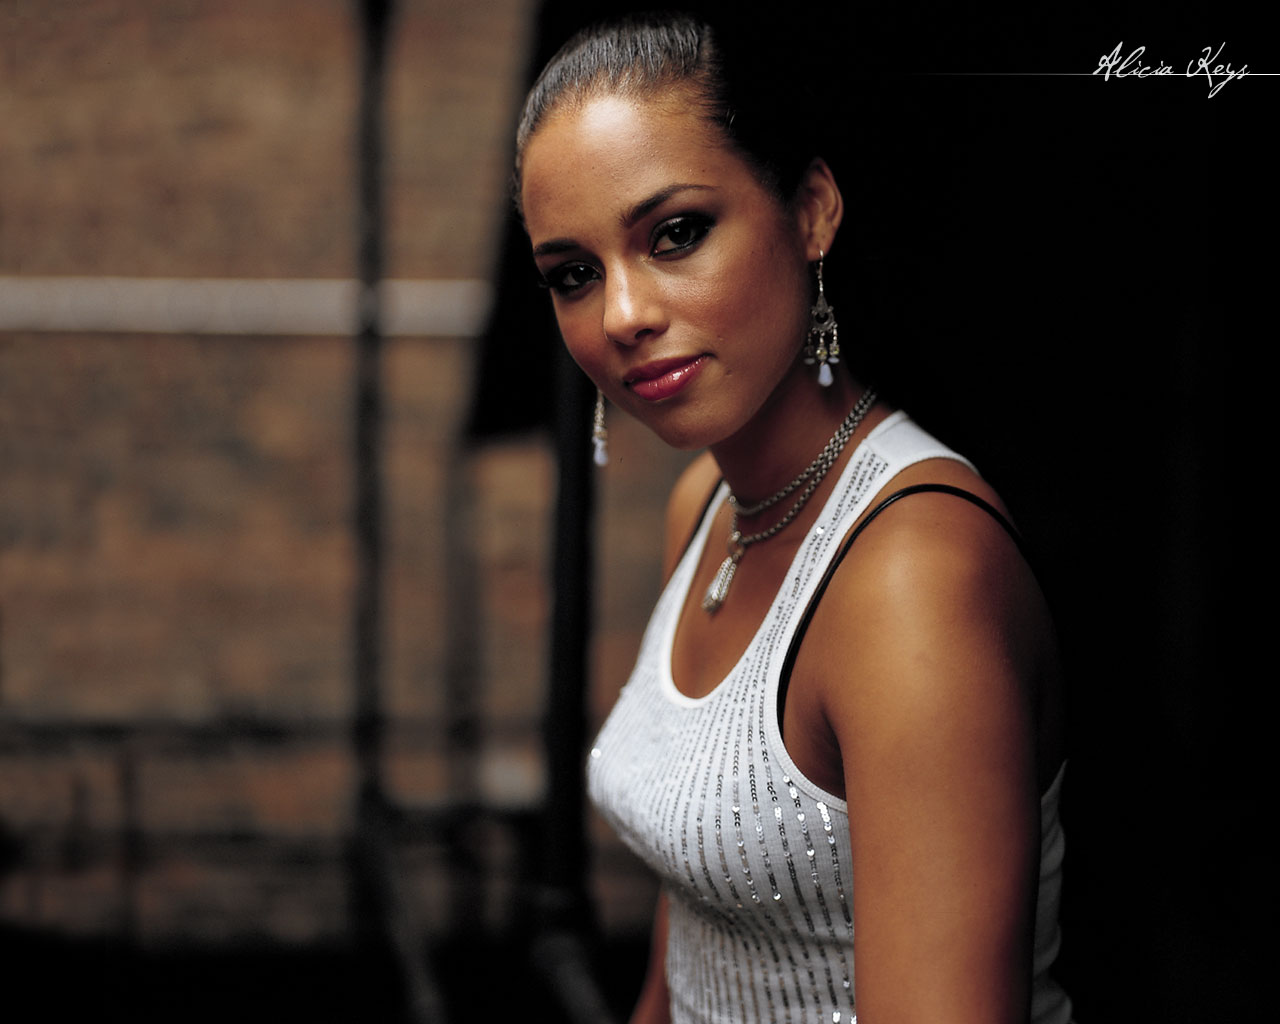 Alicia Keys - Picture Gallery